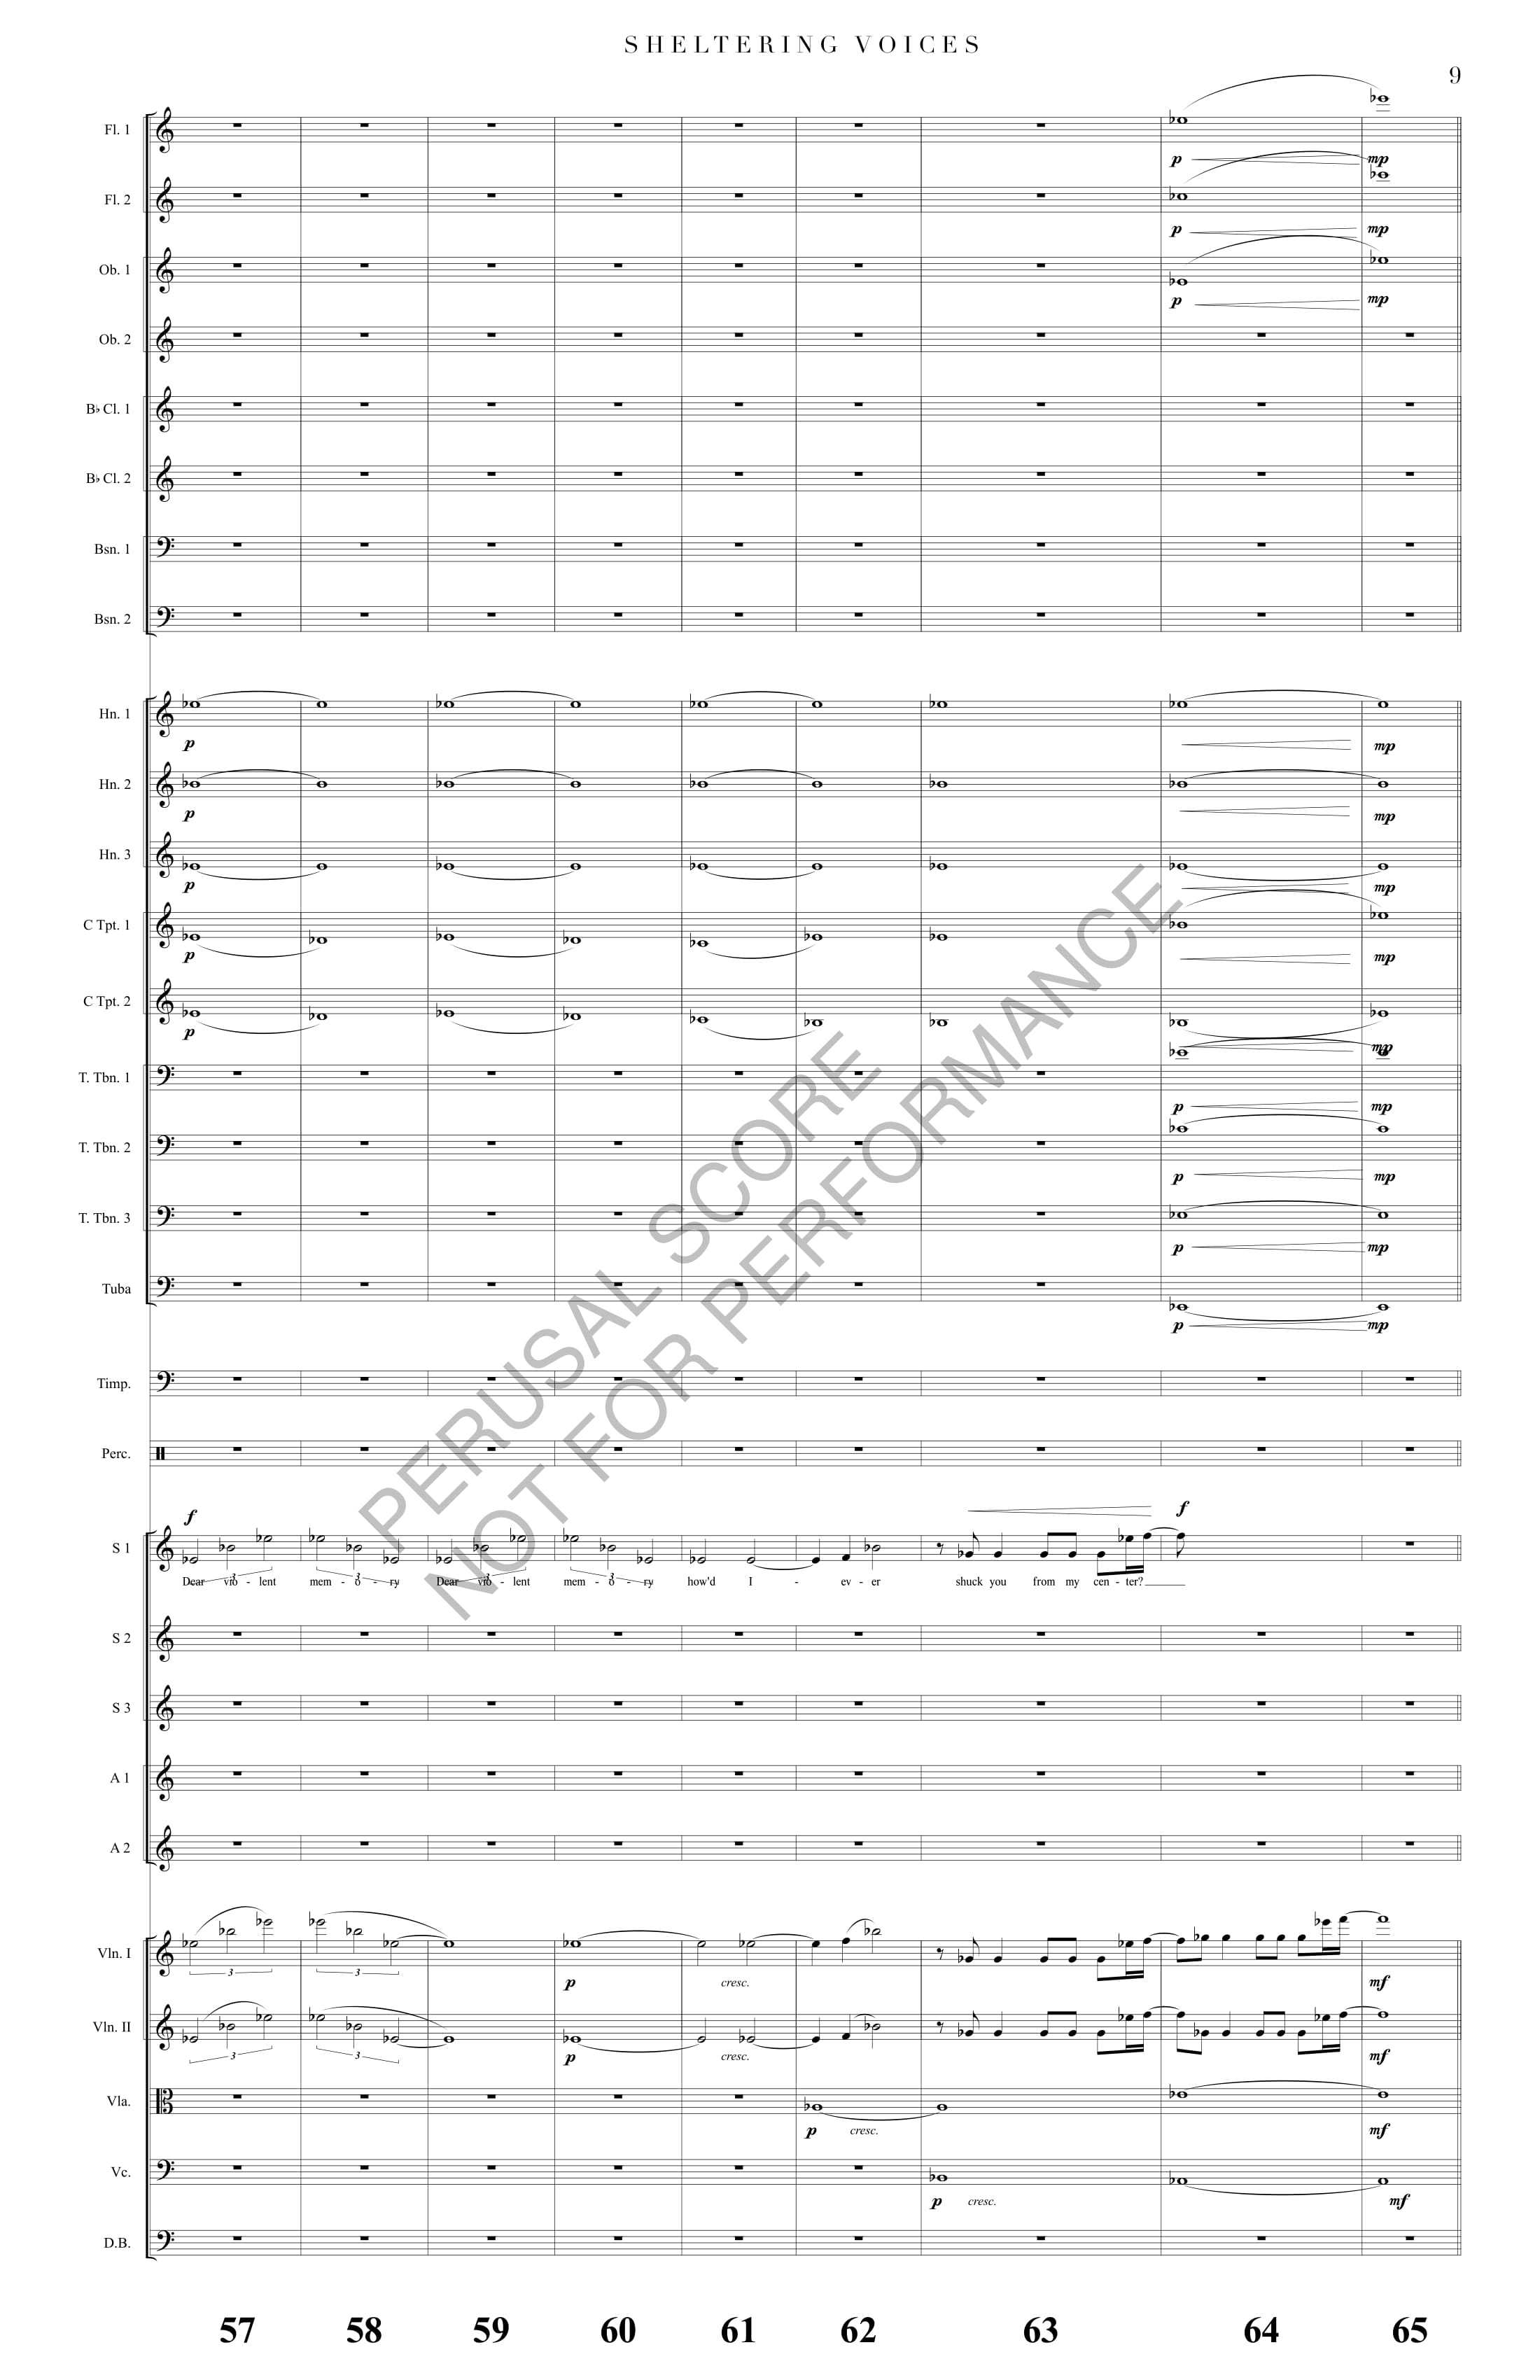 Boyd Sheltering Voices Score-watermark-17.jpg